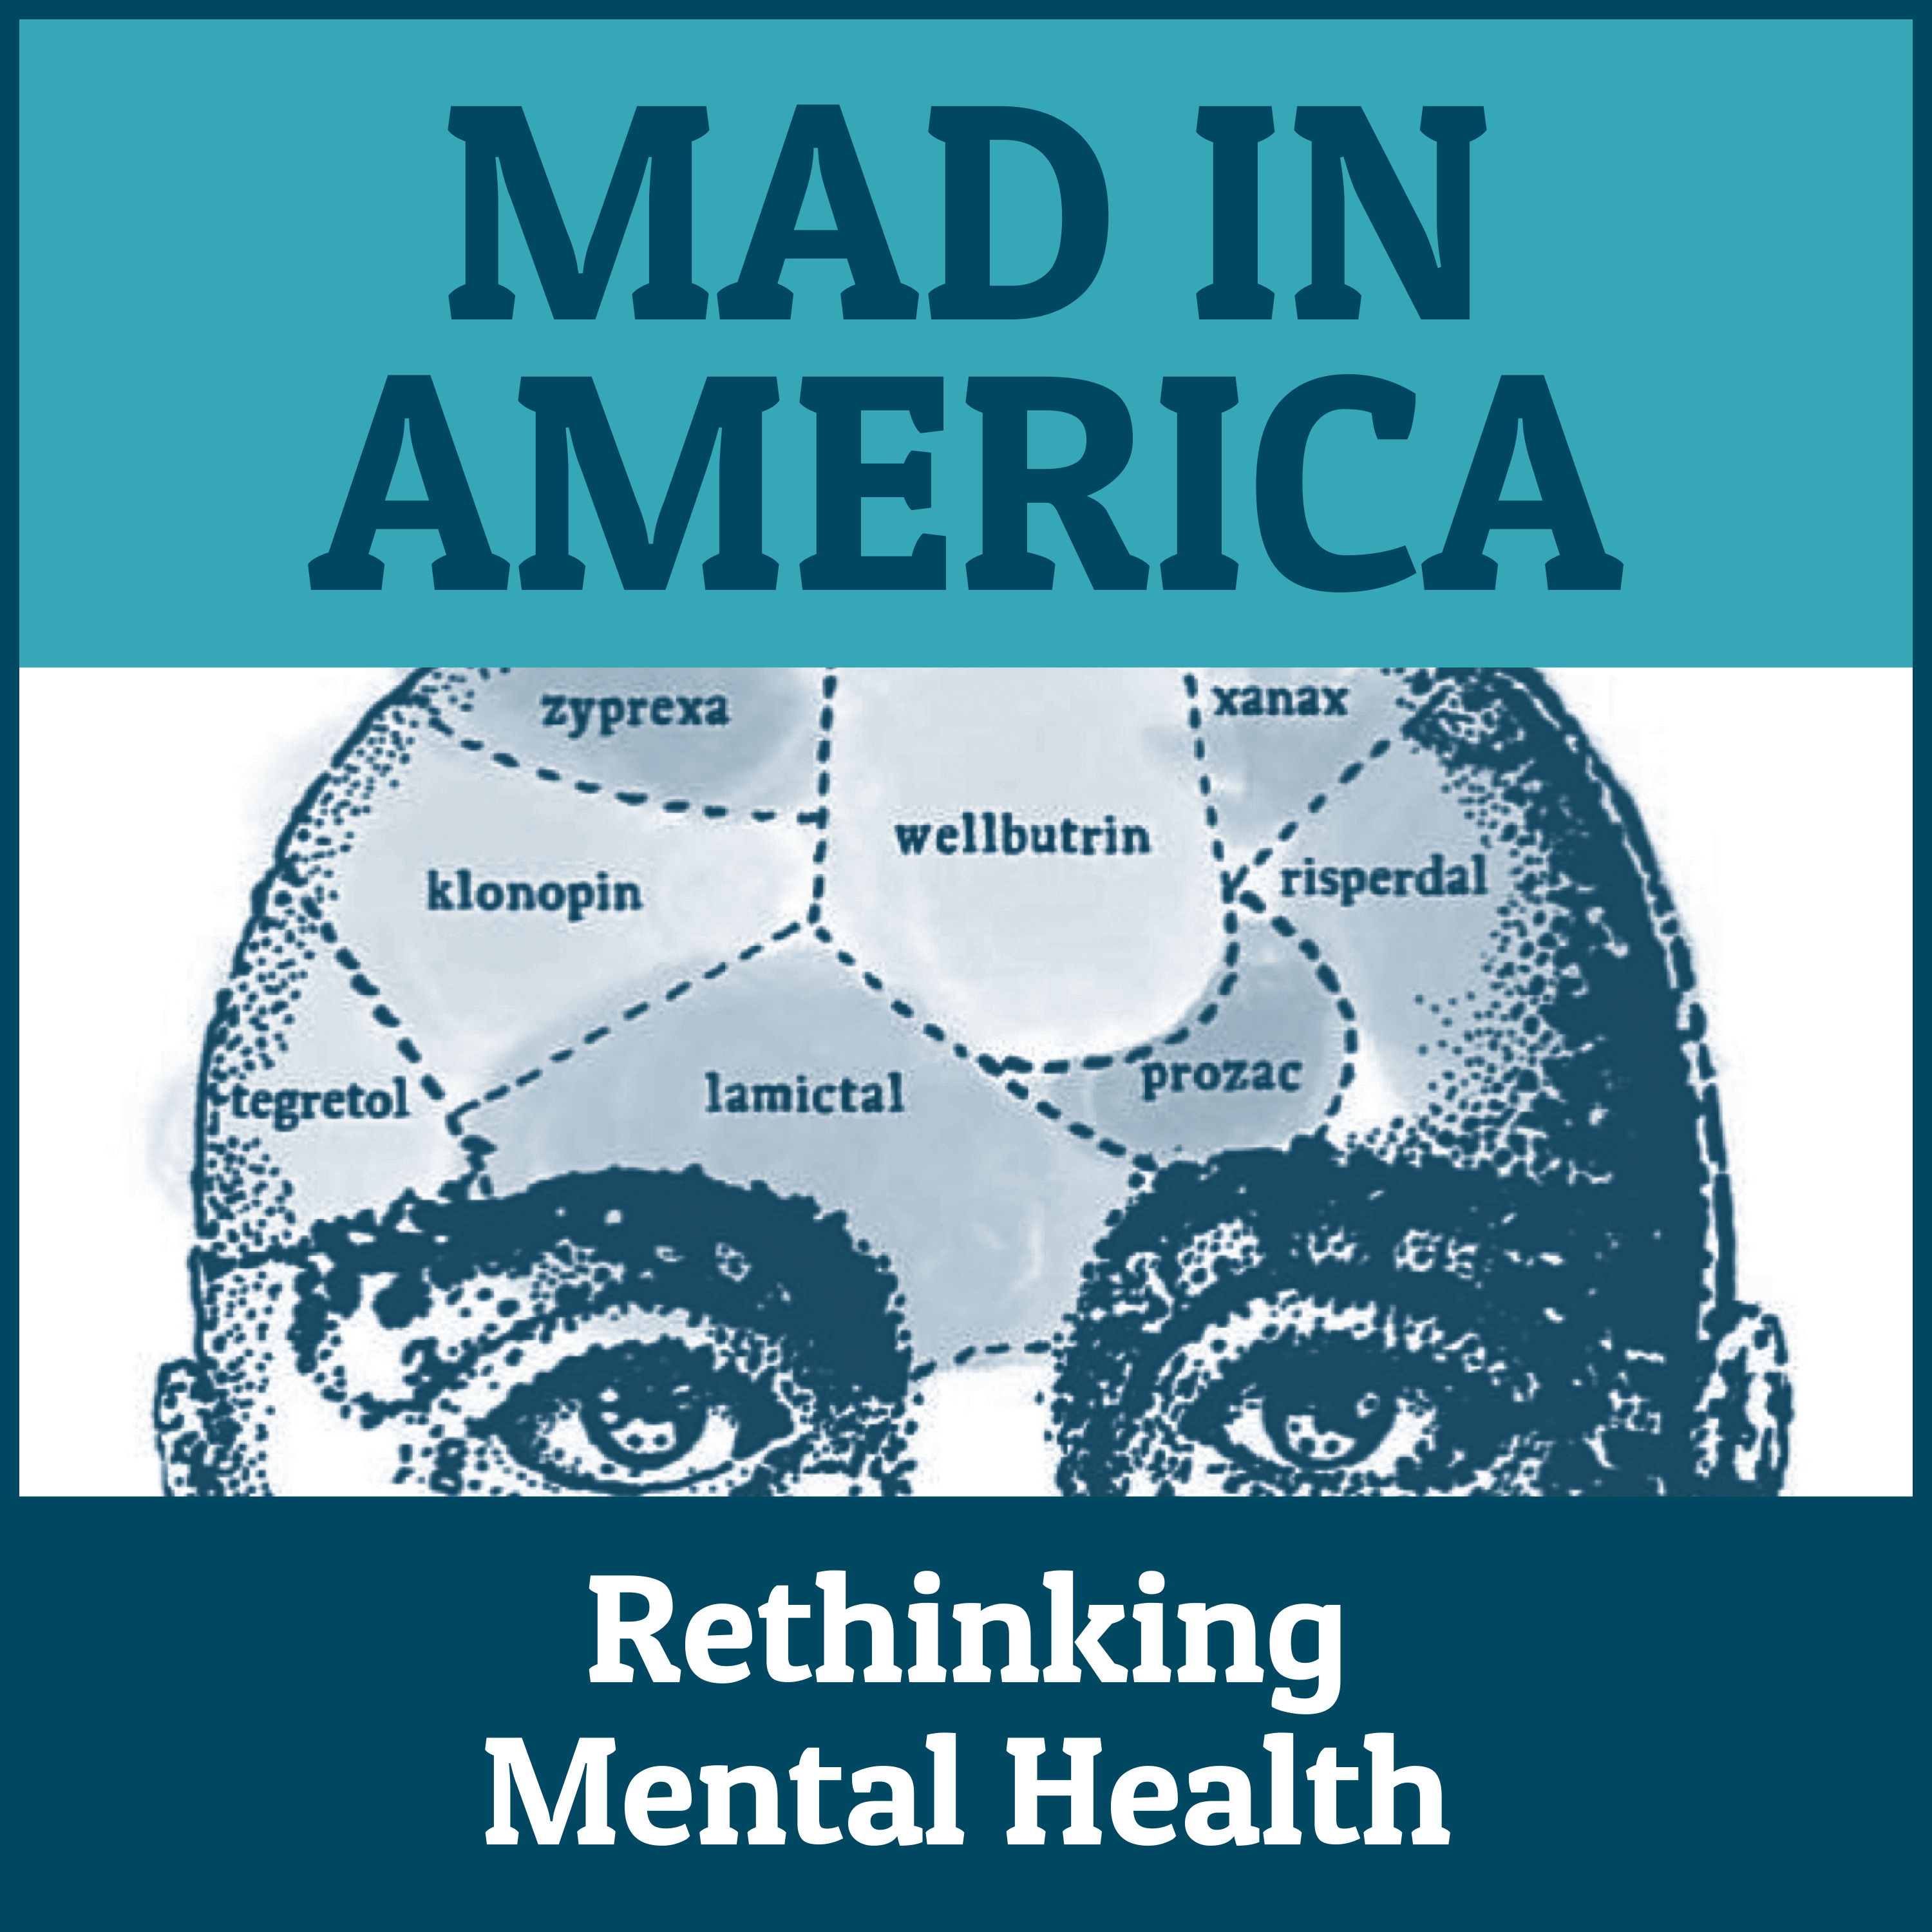 Mad in America: Rethinking Mental Health - Hannah Pickard - Responsibility Without Blame in Therapeutic Communities